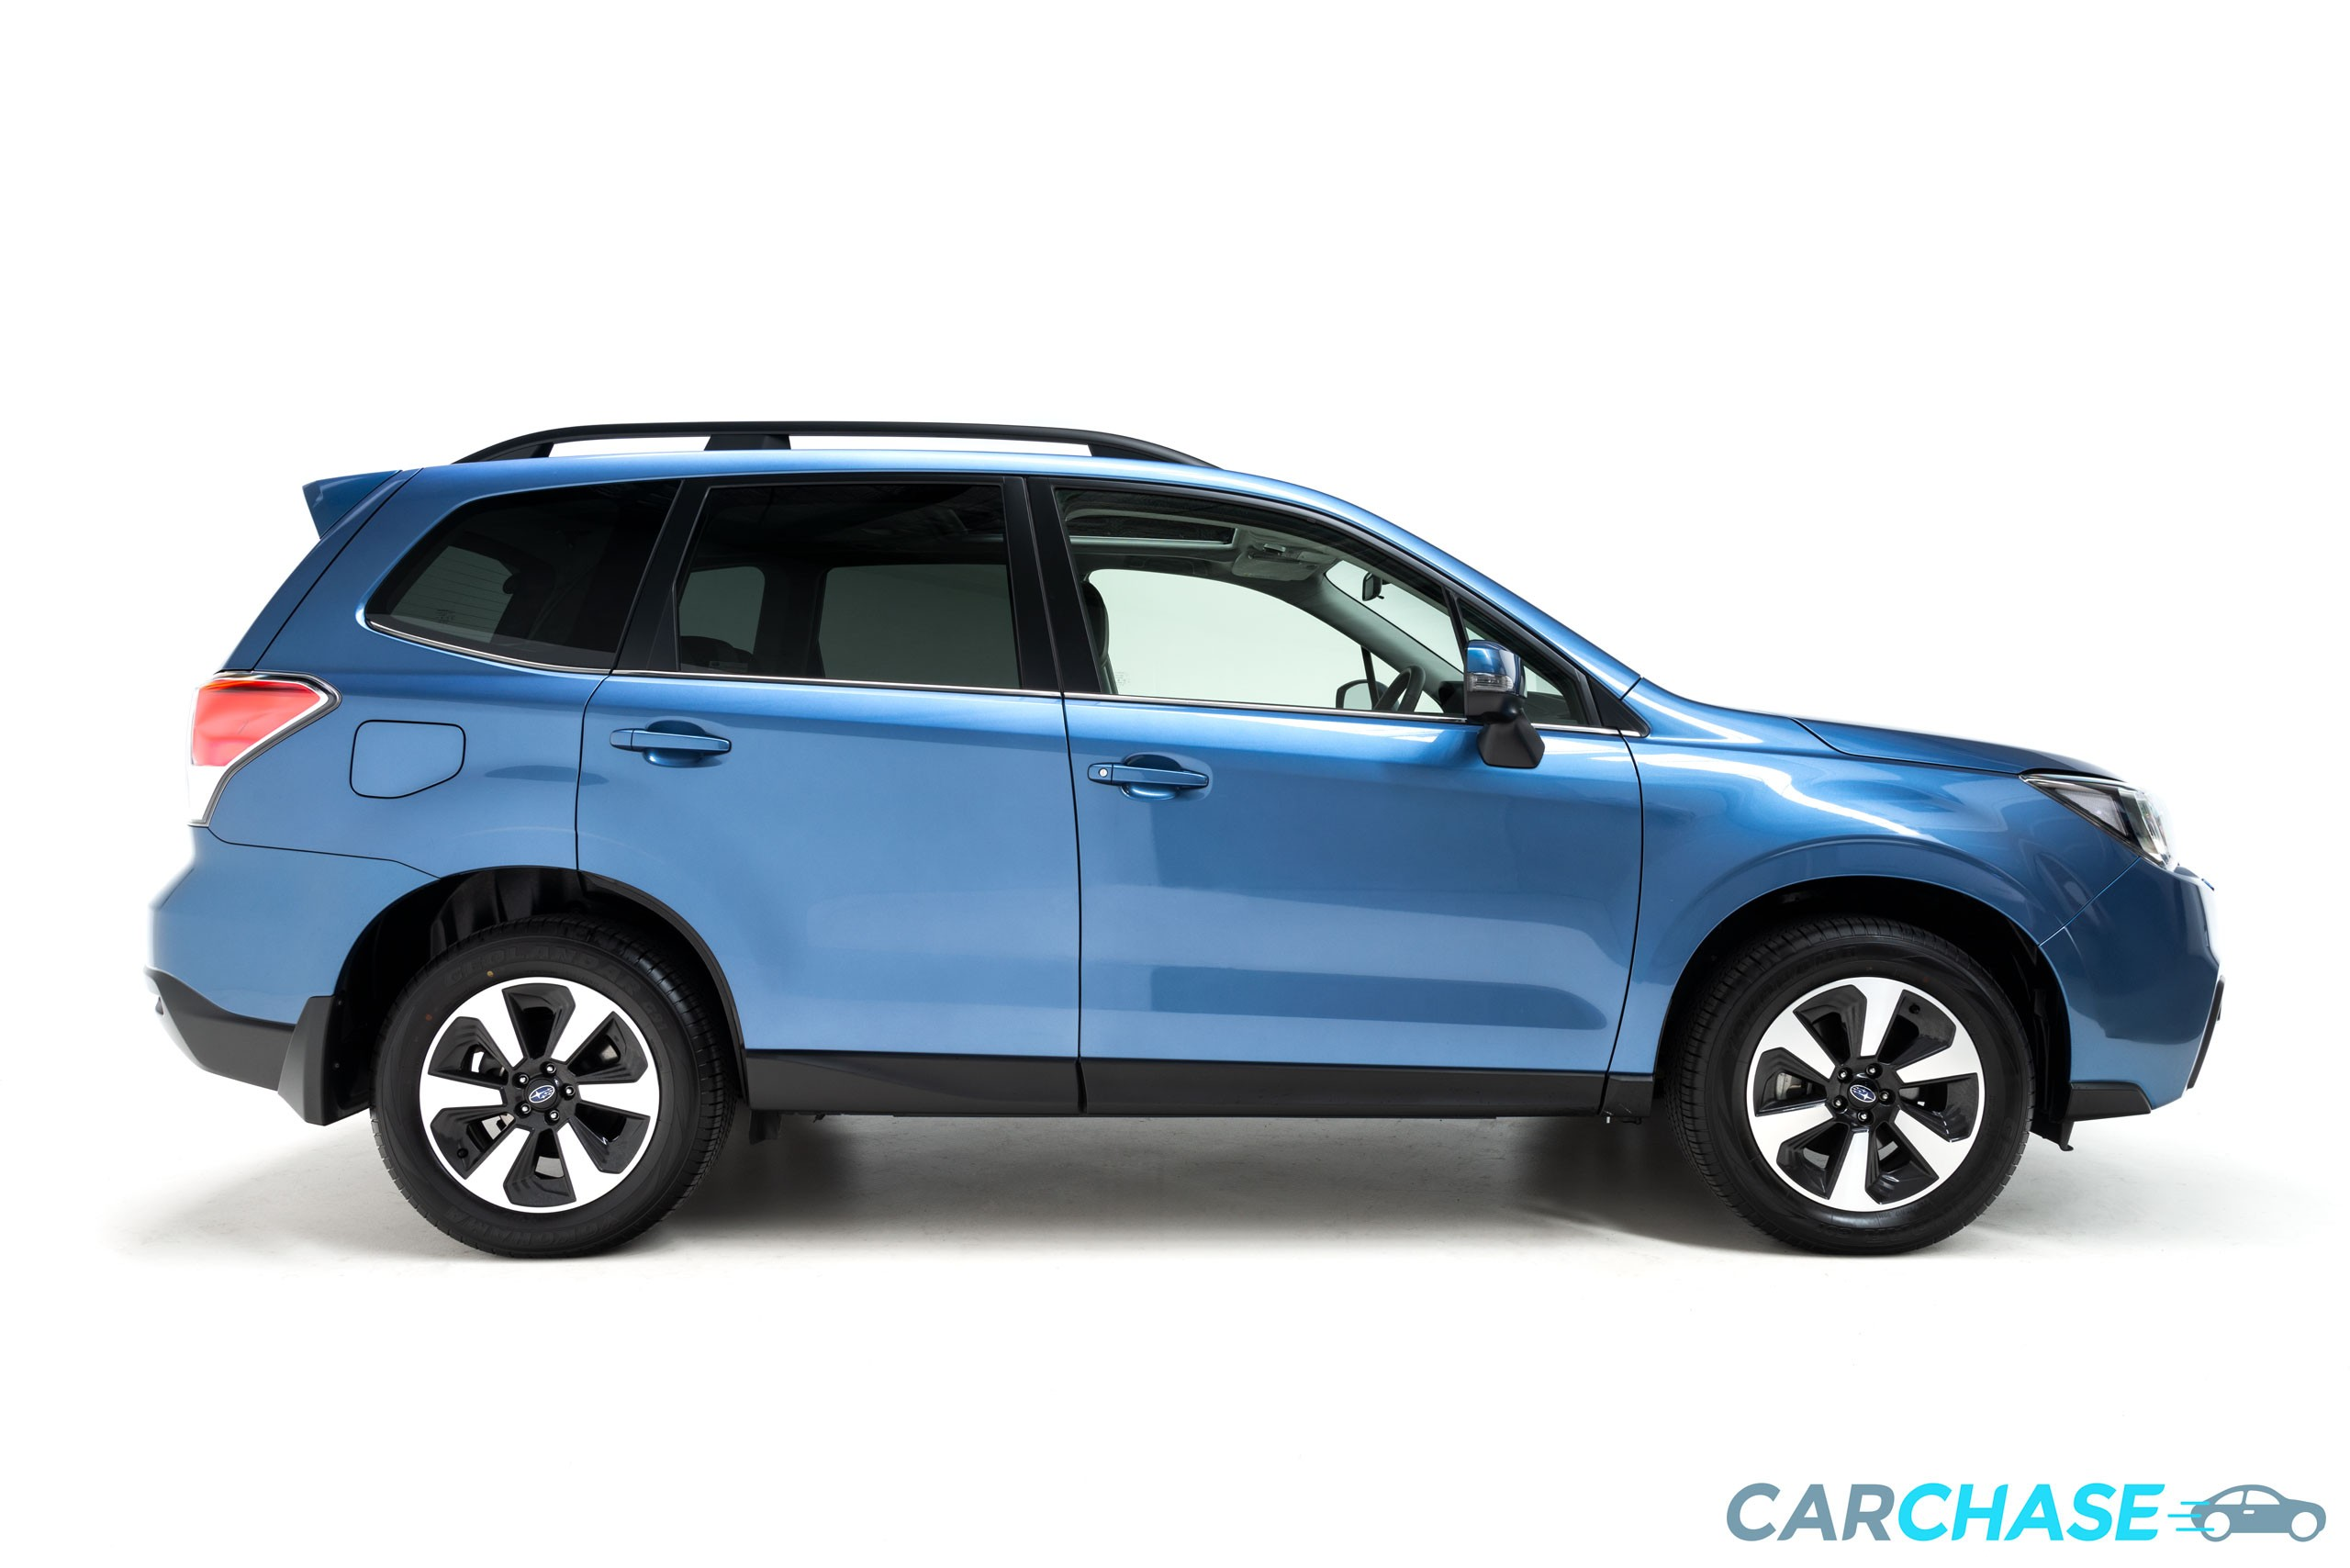 Image of right profile of 2018 Subaru Forester 2.5i-L Luxury